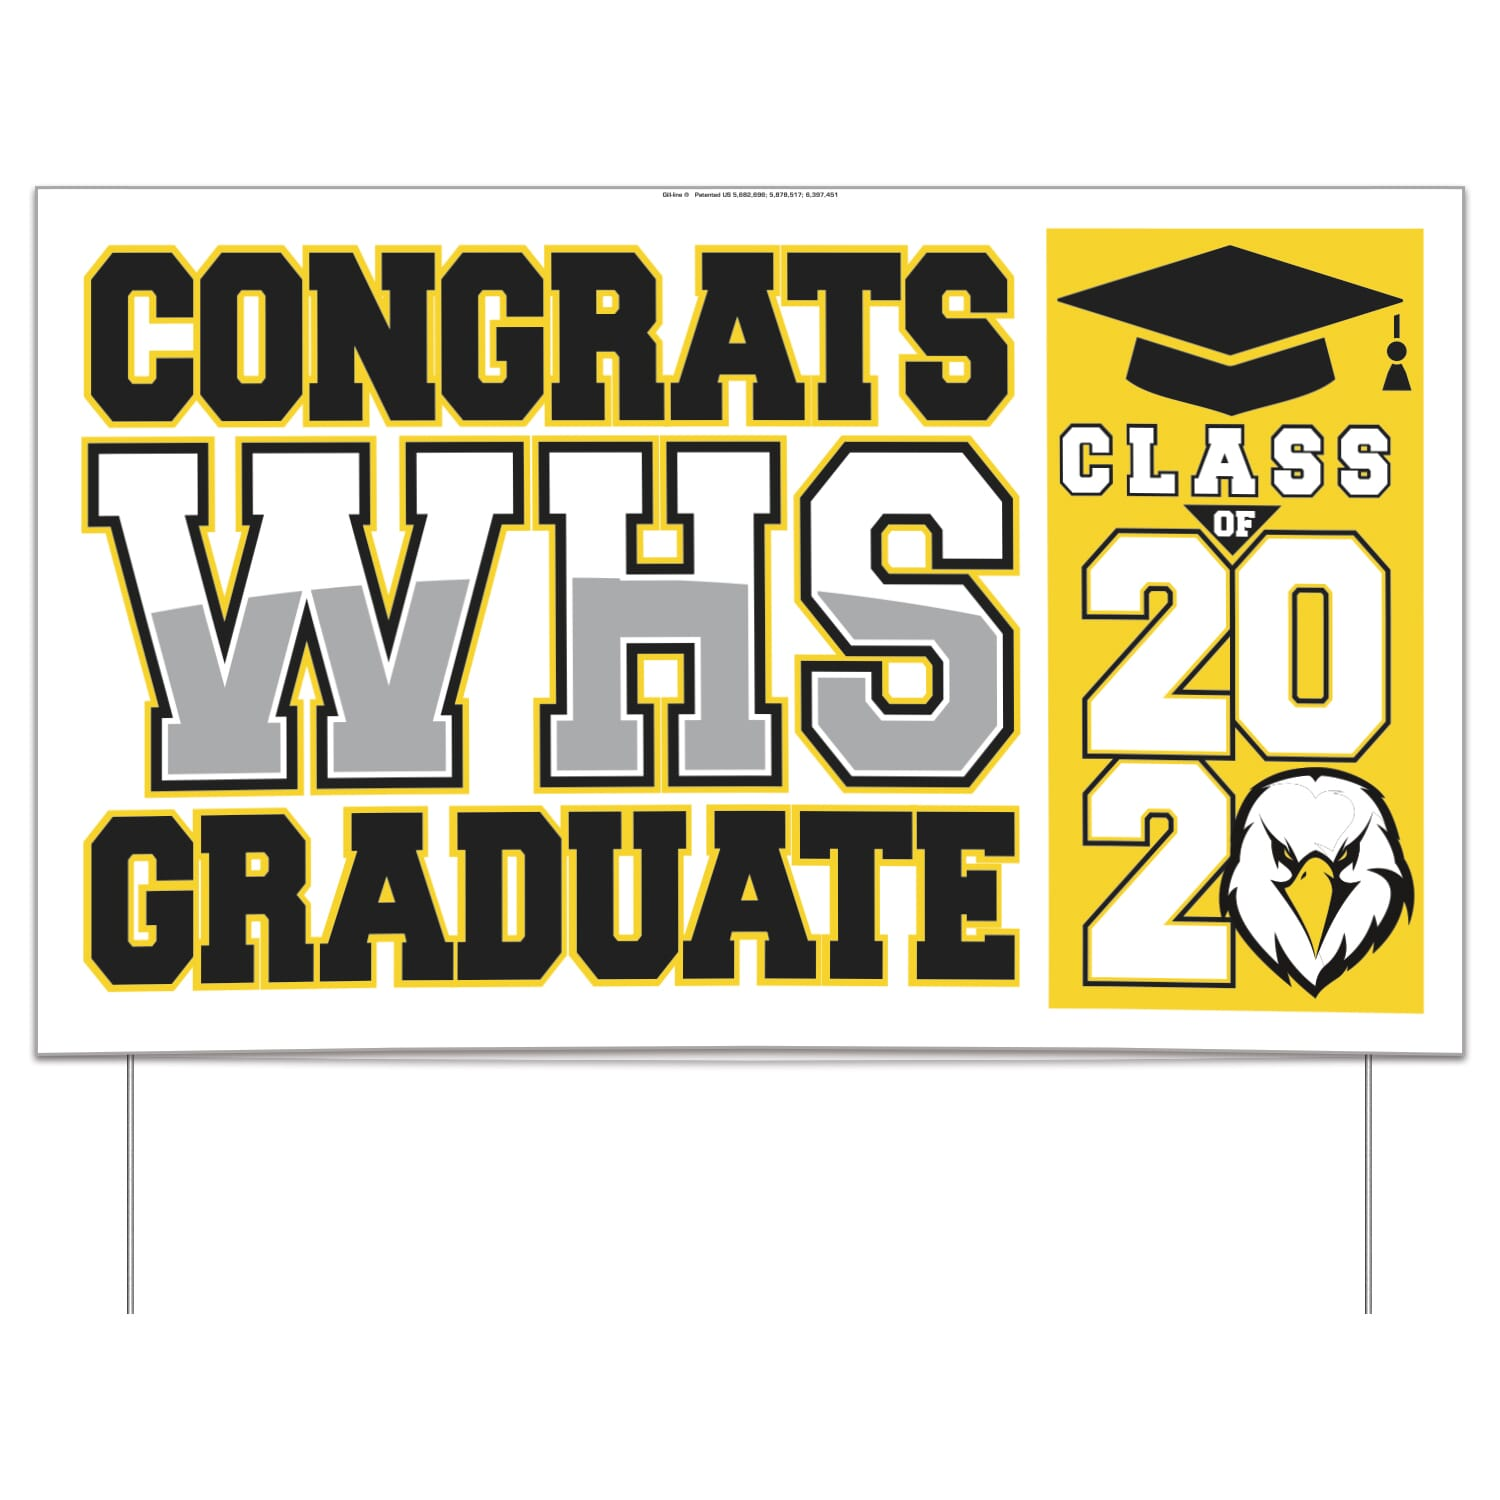 Double-sided graduation lawn sign